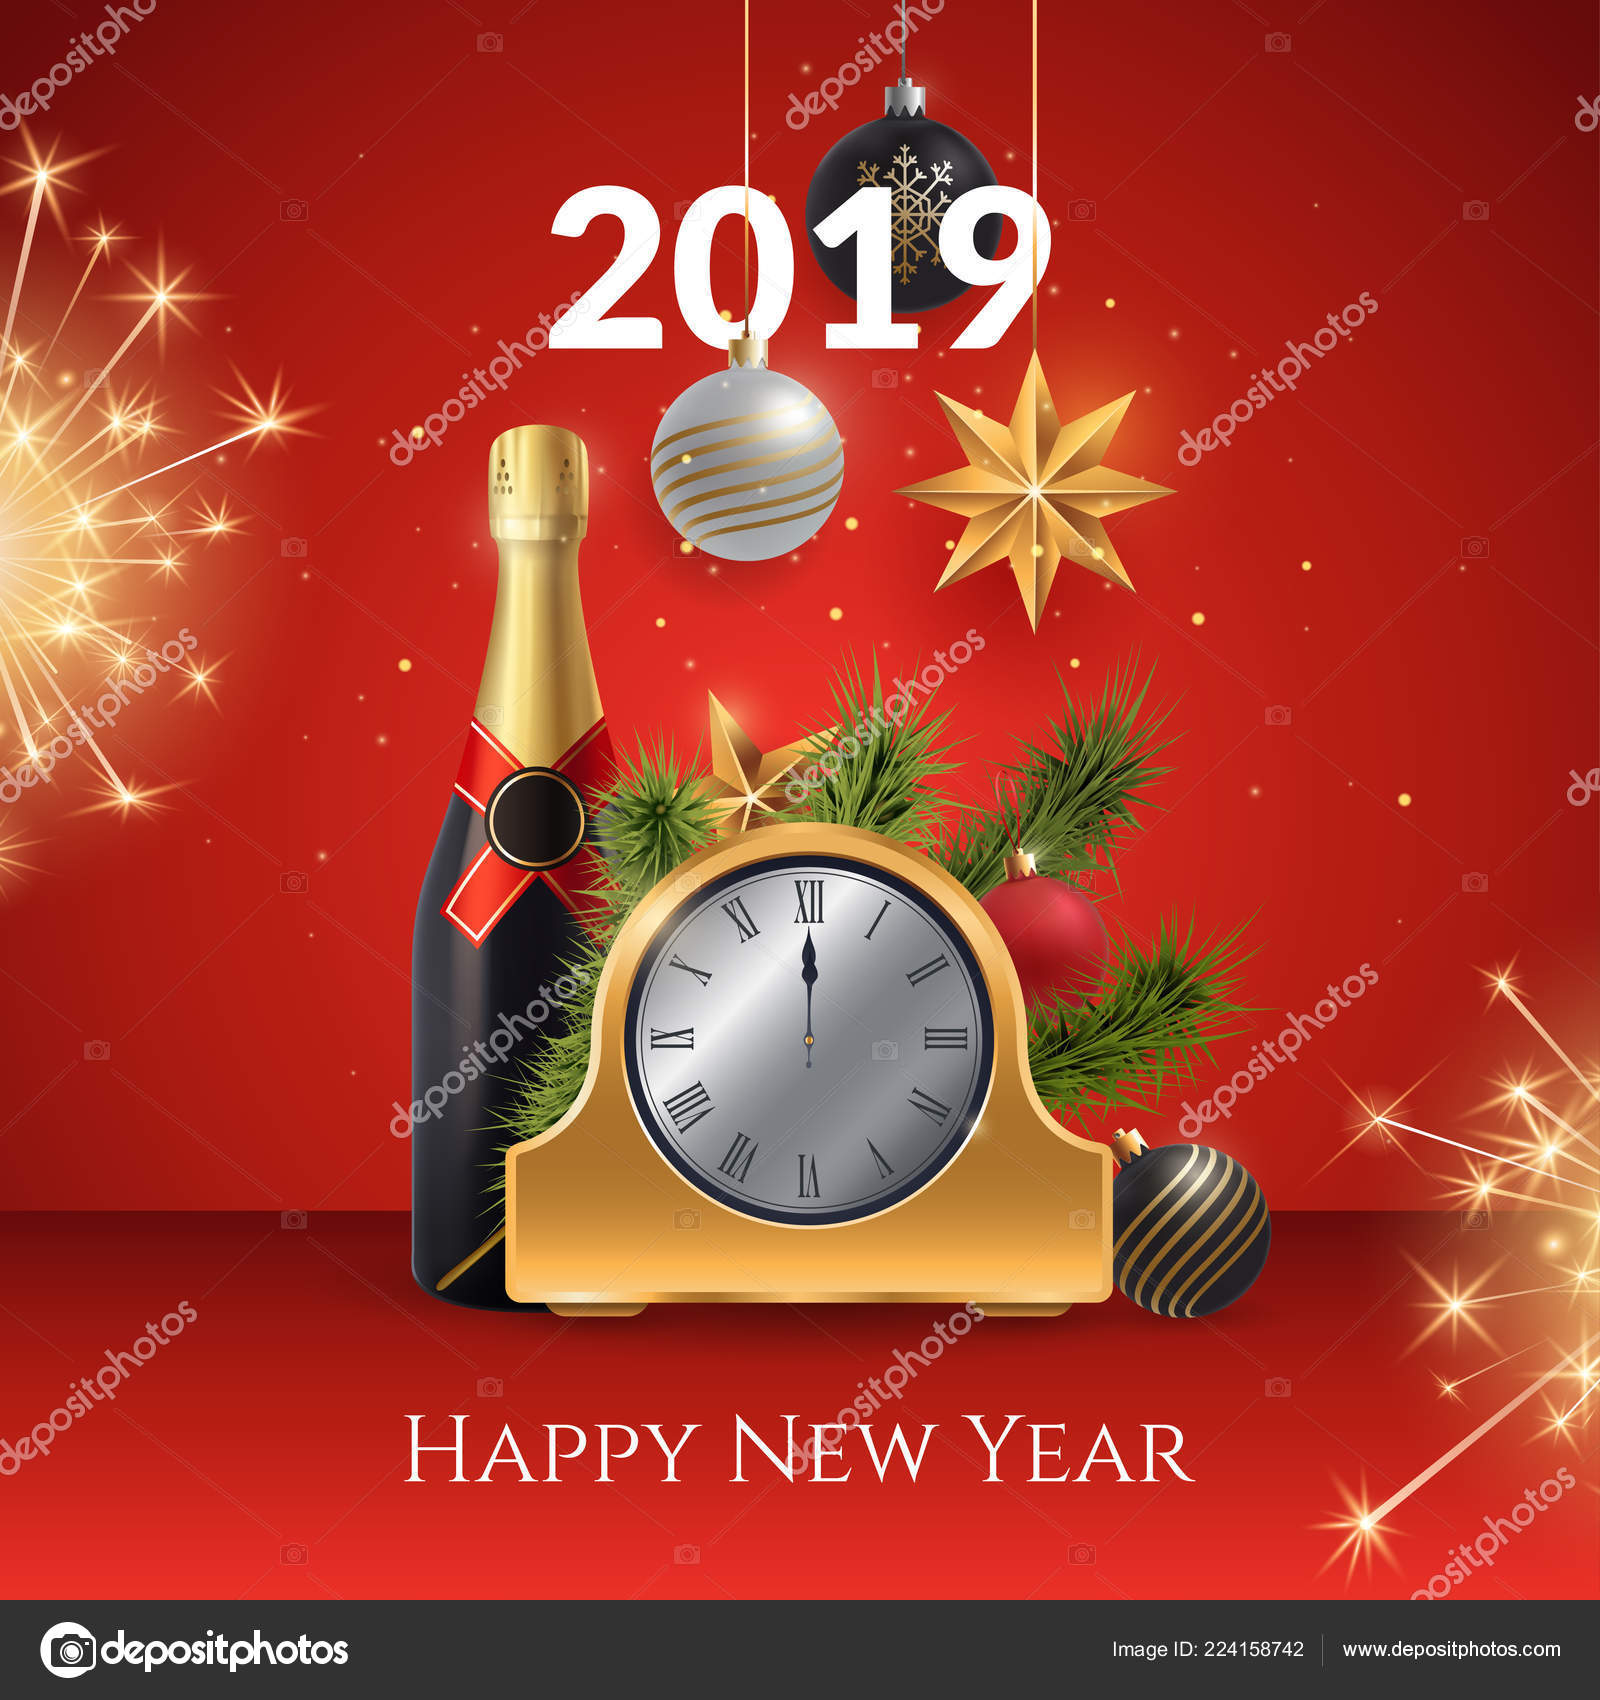 2019 happy new year vector illustration composition with a golden clock champagne bottle fir branches and festive fireworks holiday card or invitation